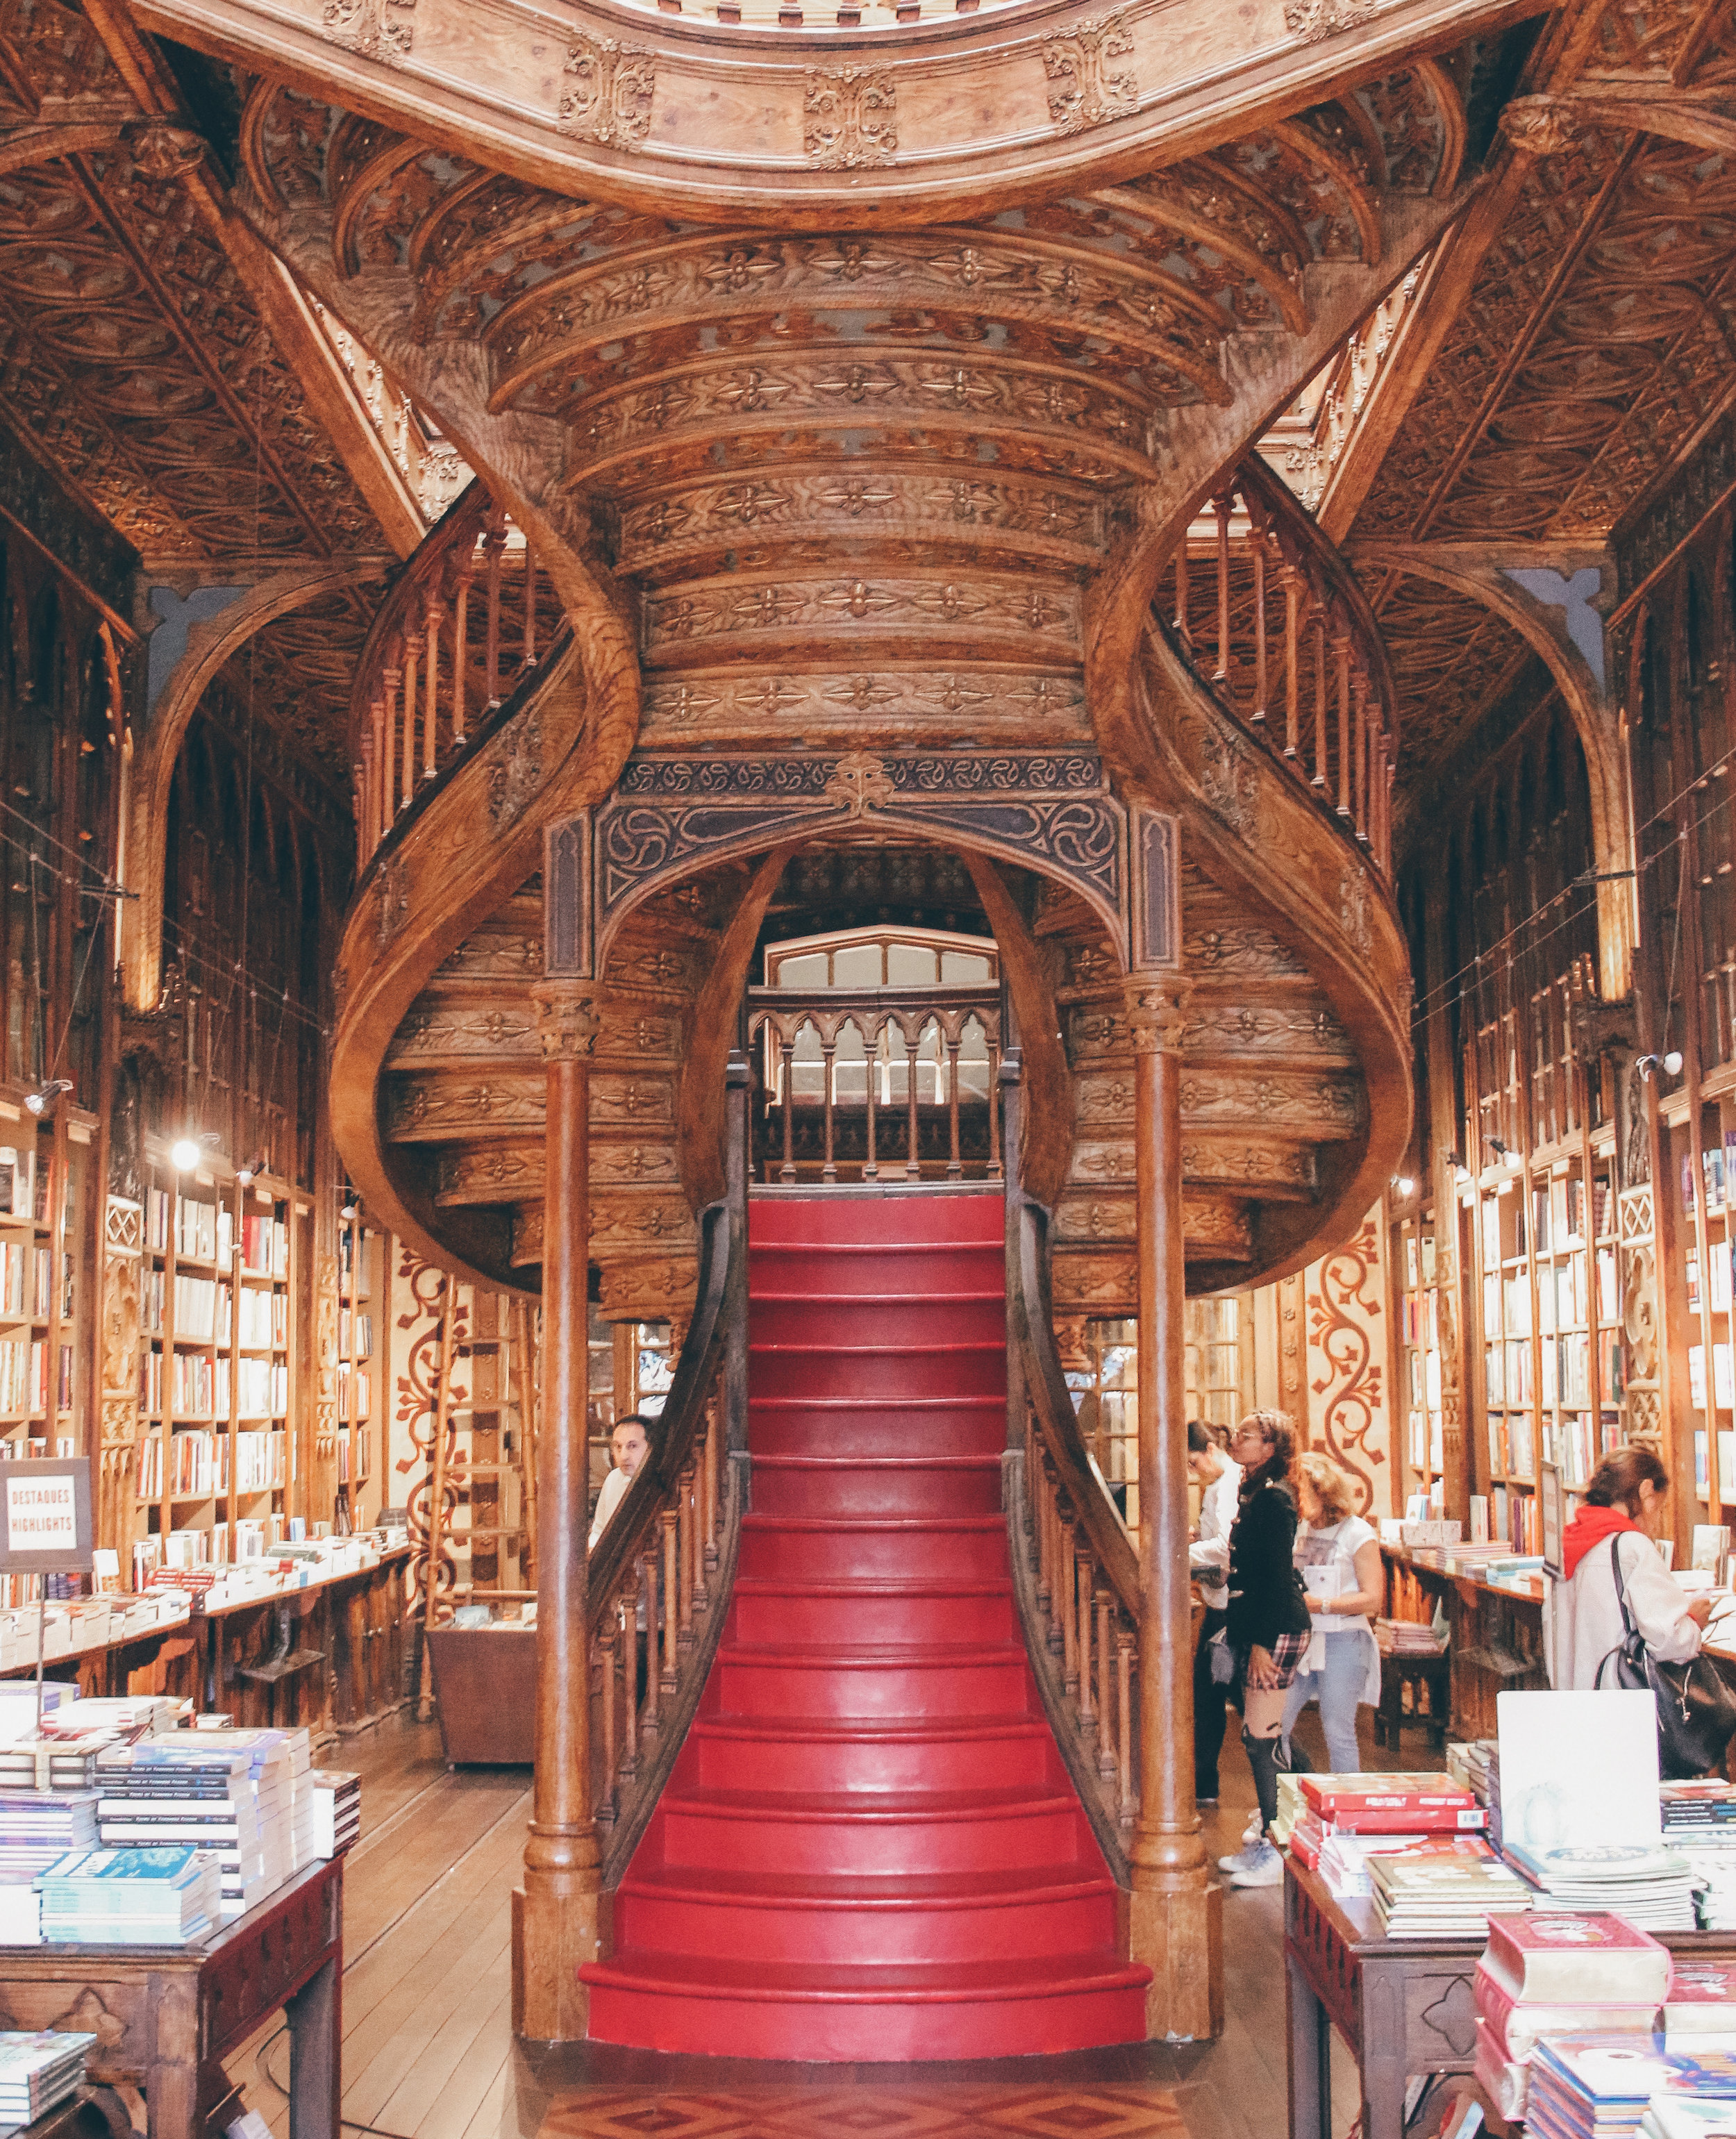 - In case you haven't heard, Livraria Lello is the famous library that many people believe to have inspired JK Rowling's vision for Flourish and Blotts in Harry Potter. The most important thing I'm going to tell you about Livraria Lello is this: GO AT THE END OF THE DAY! This place gets absolutely packed and it's because it is STUNNING. If you are anything like me and you want to get some gorgeous pictures, it is in your best interest to show up right before closing time (which was 7:30 PM on this particular day, so I showed up around 6:30 PM.)